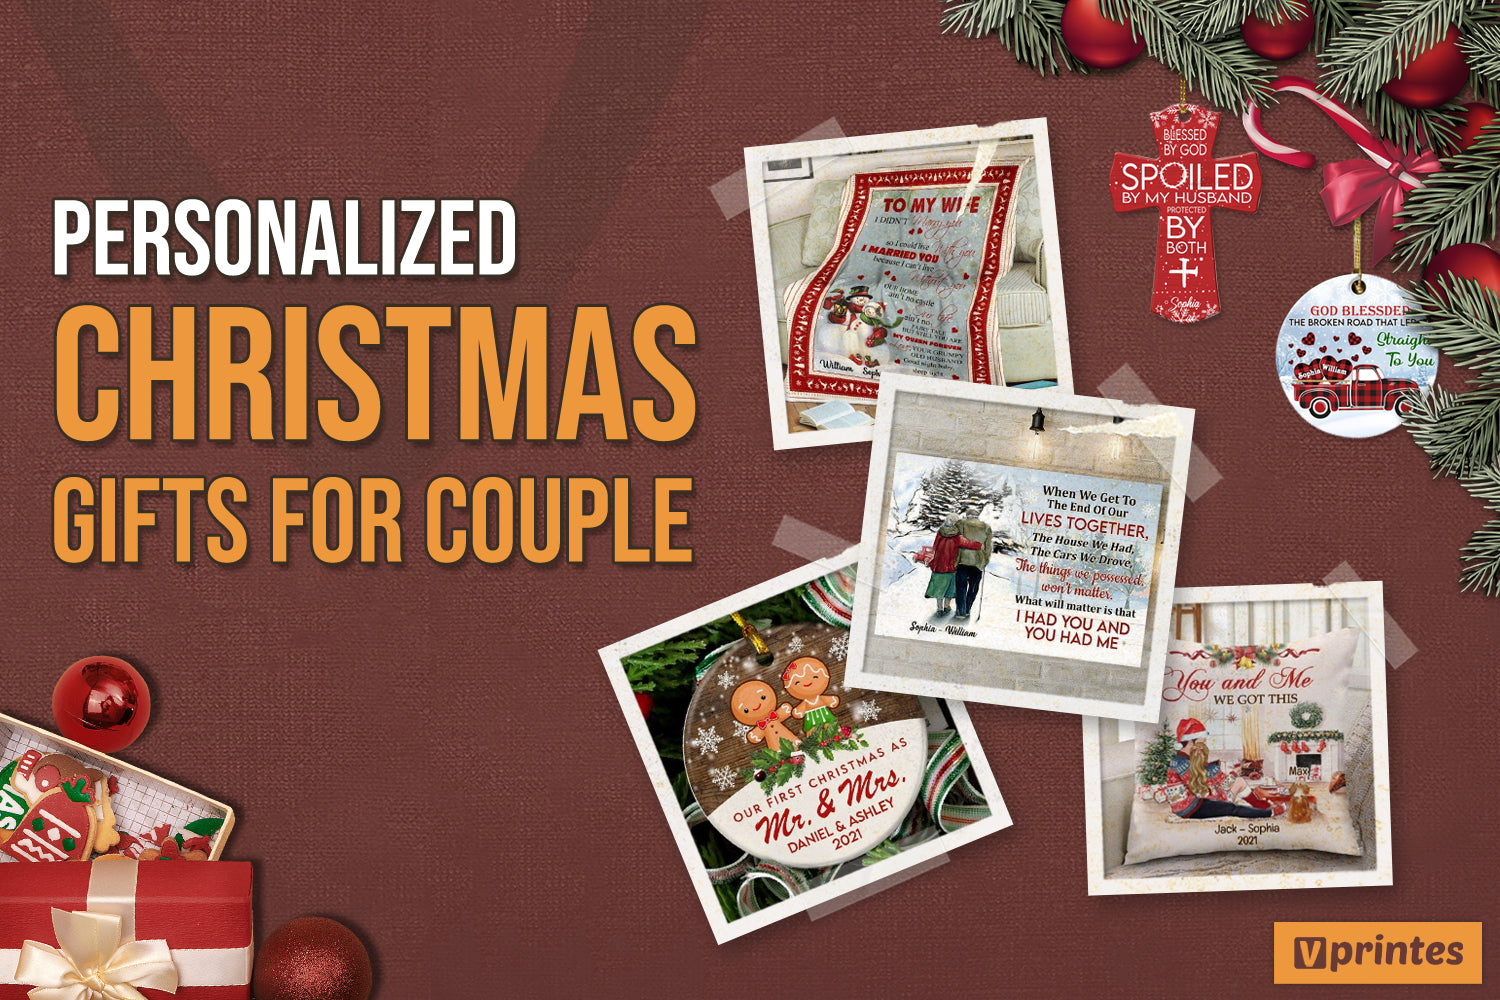 Personalized Christmas Gifts For Couple